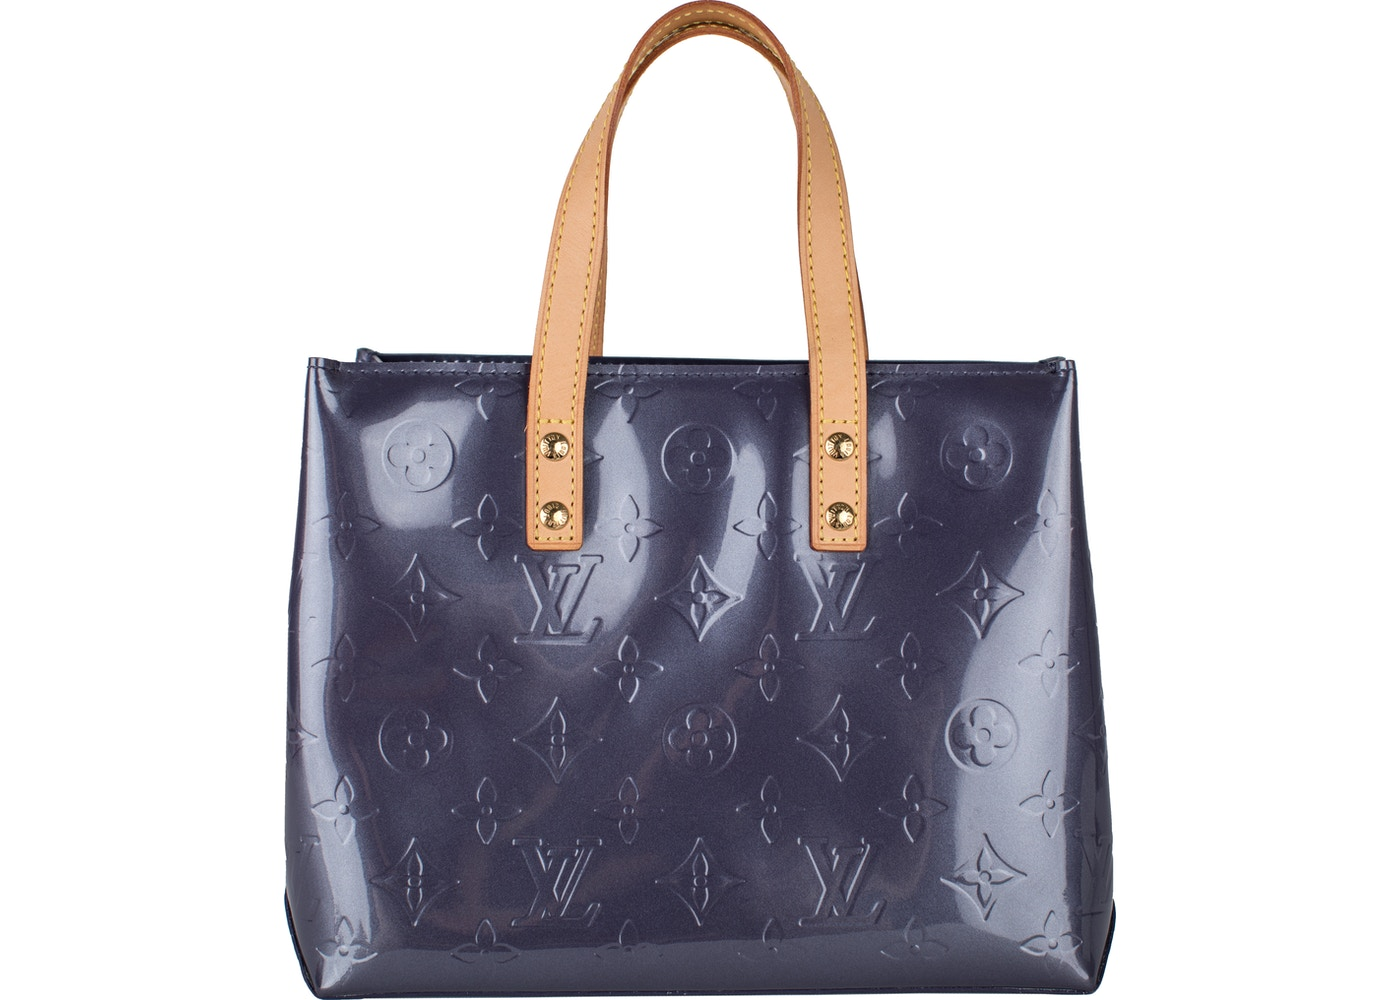 0b8226c0b Louis Vuitton Reade Monogram Vernis PM Blue Nuit. Monogram Vernis PM Blue  Nuit